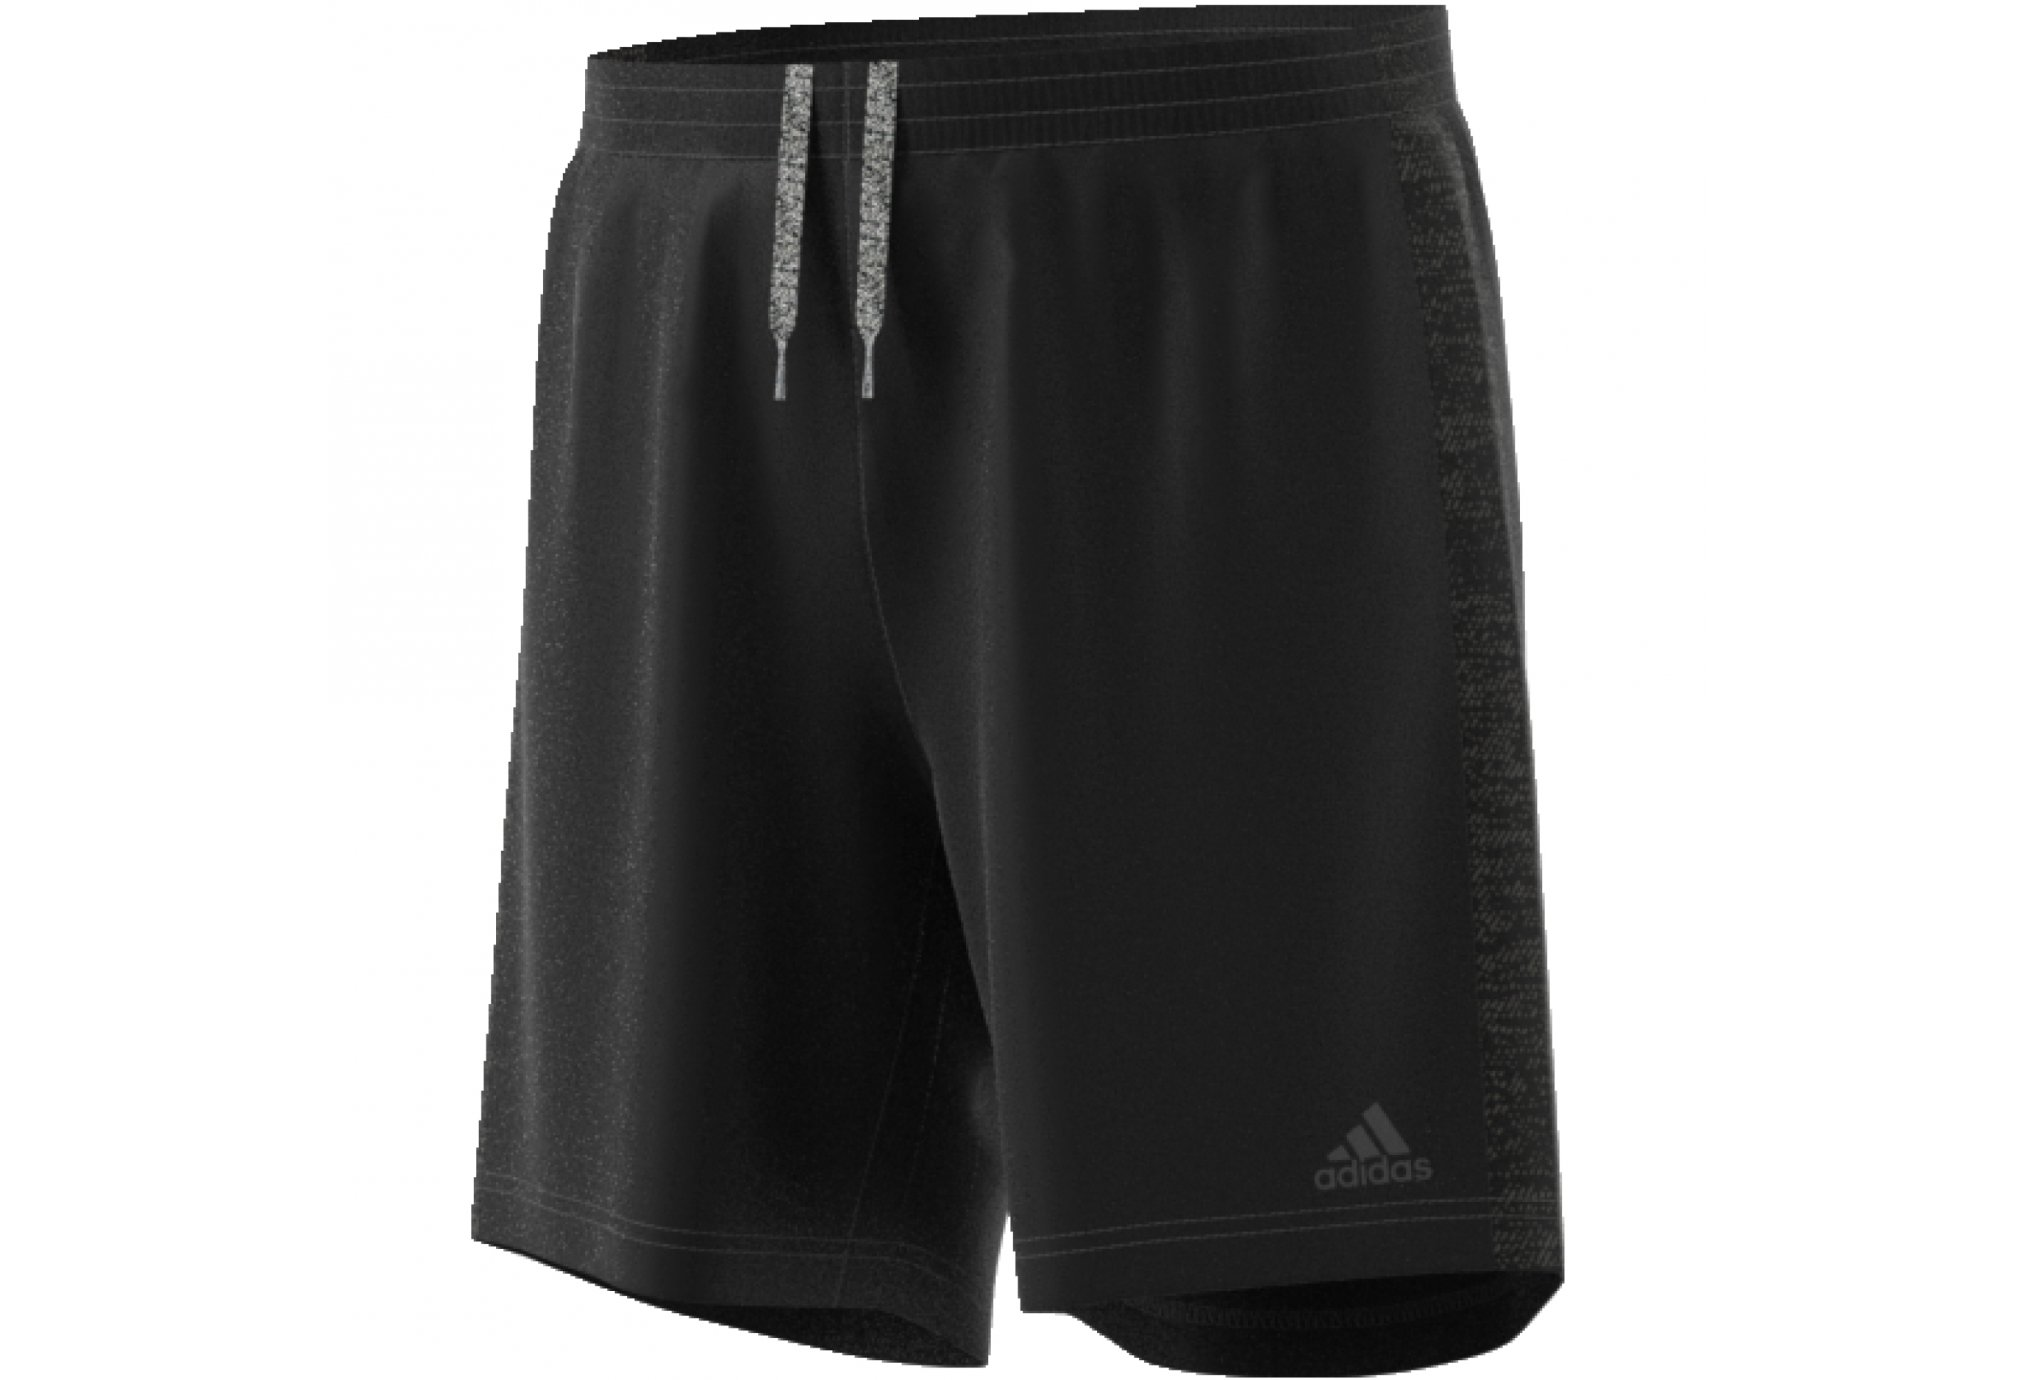 adidas-short-supernova-5inch-m-vetements-homme-134516-1-fz